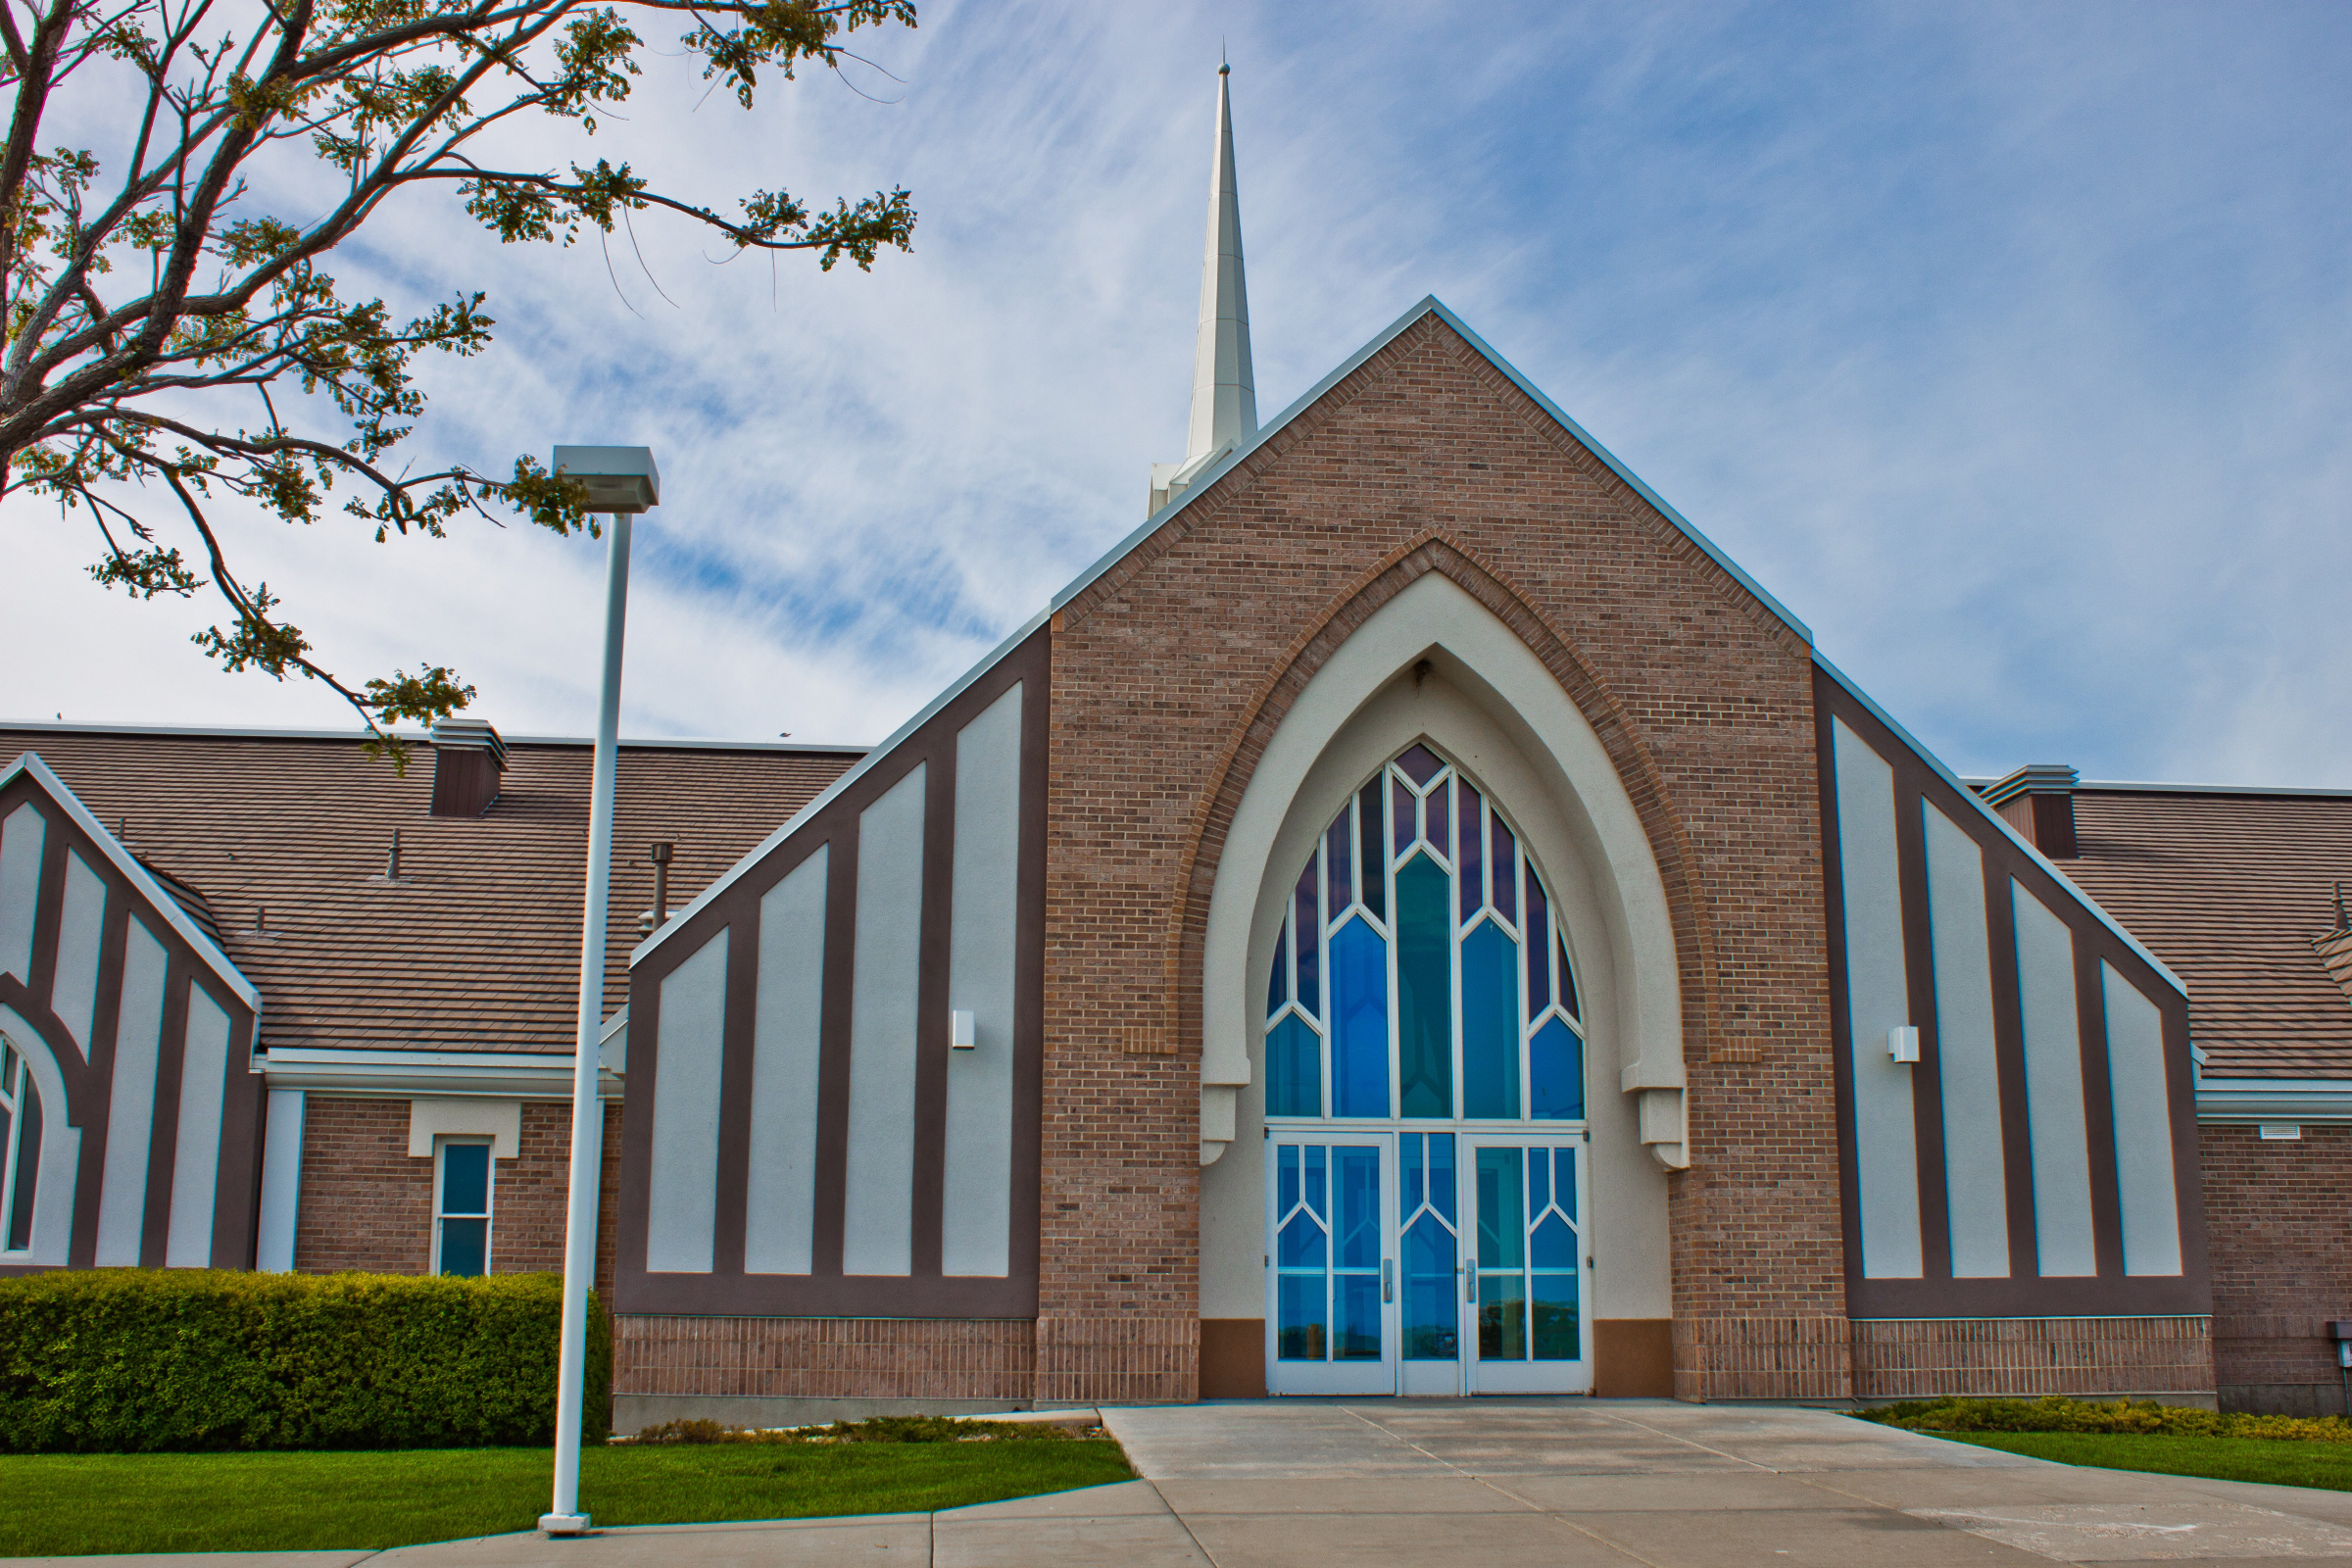 The Church of Jesus Christ of Latter-day Saints - Newberg OR | 1212 Deborah Rd, Newberg, OR, 97132 | +1 (503) 538-5008